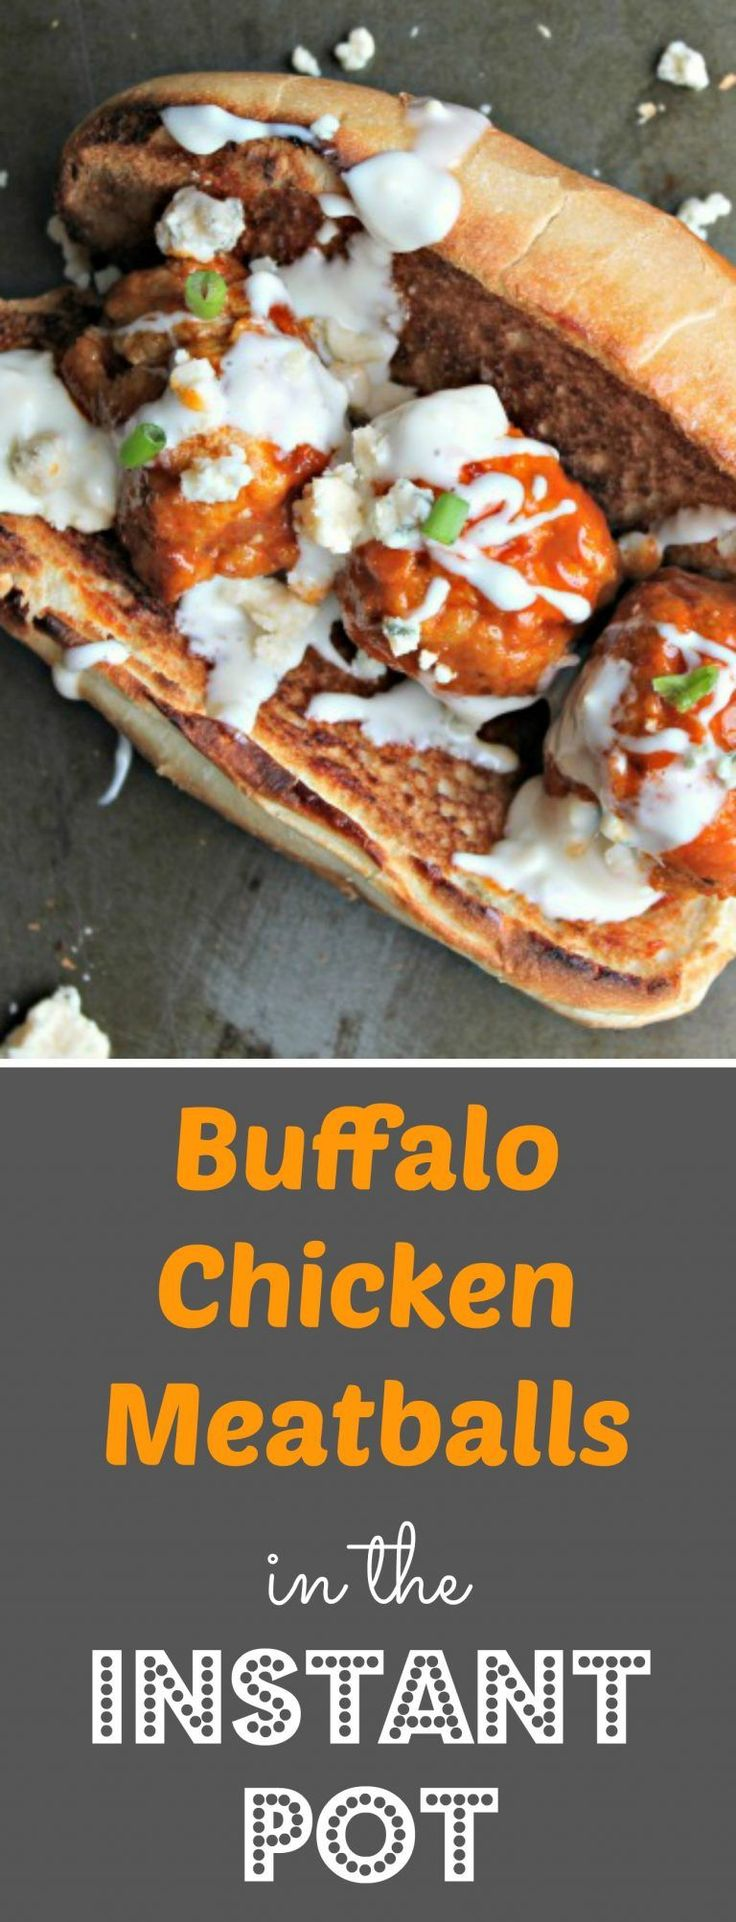 BUFFALO CHICKEN MEATBALLS In the Instant Pot - Great in subs, as entree over rice or as an appetizer!